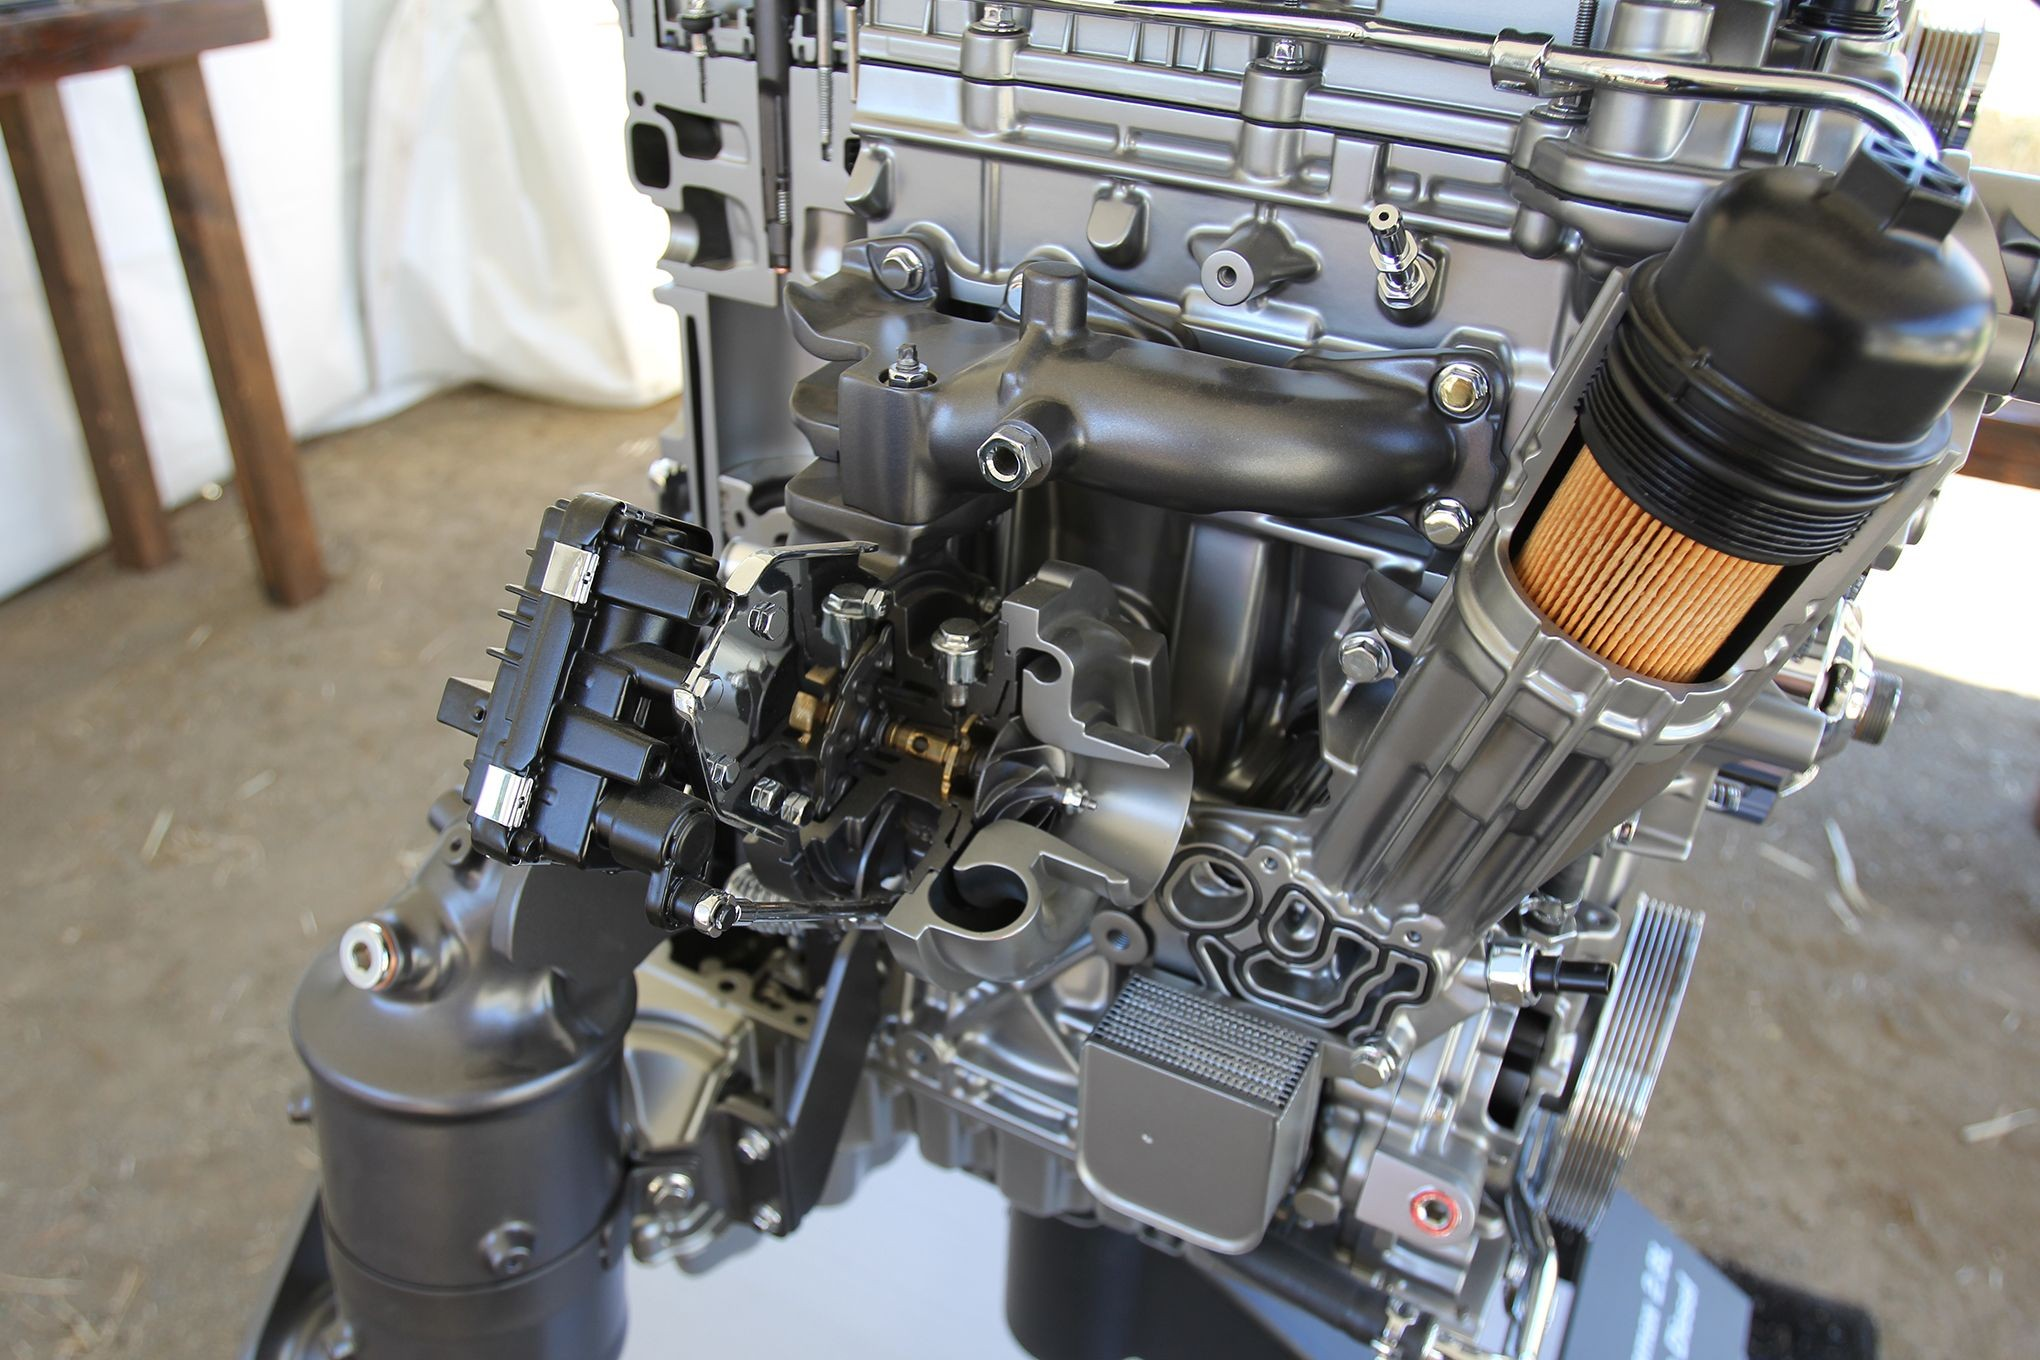 Chevrolet Colorado Engine Diagram Wiring Library Duramax Diesel 2016 2 8l First Drive Of